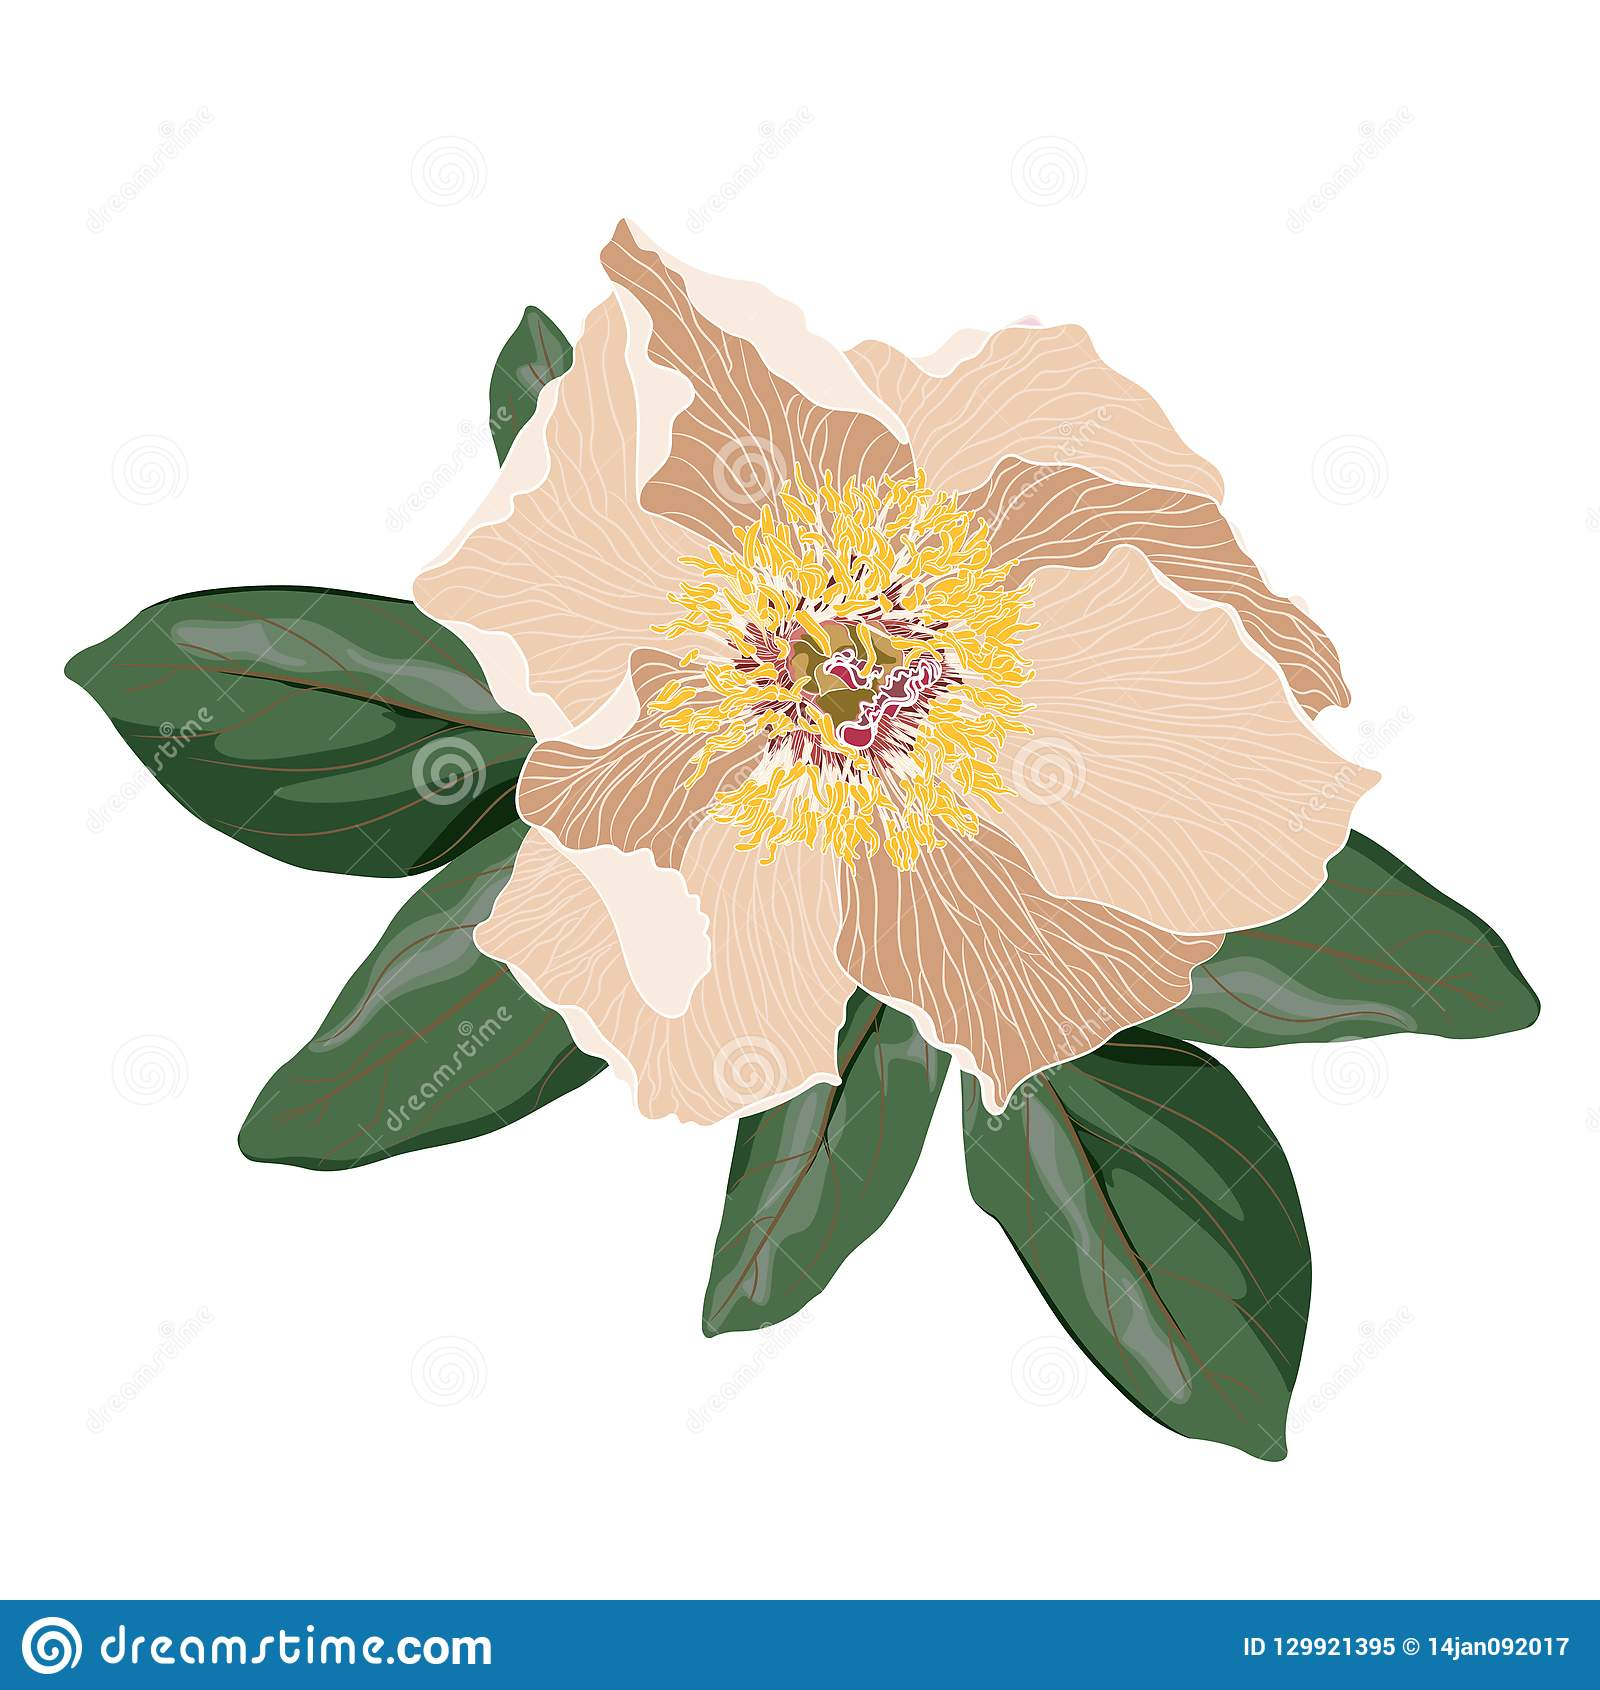 Garden light beige peony with green leaves. Watercolor, hand painted, isolated on white background.